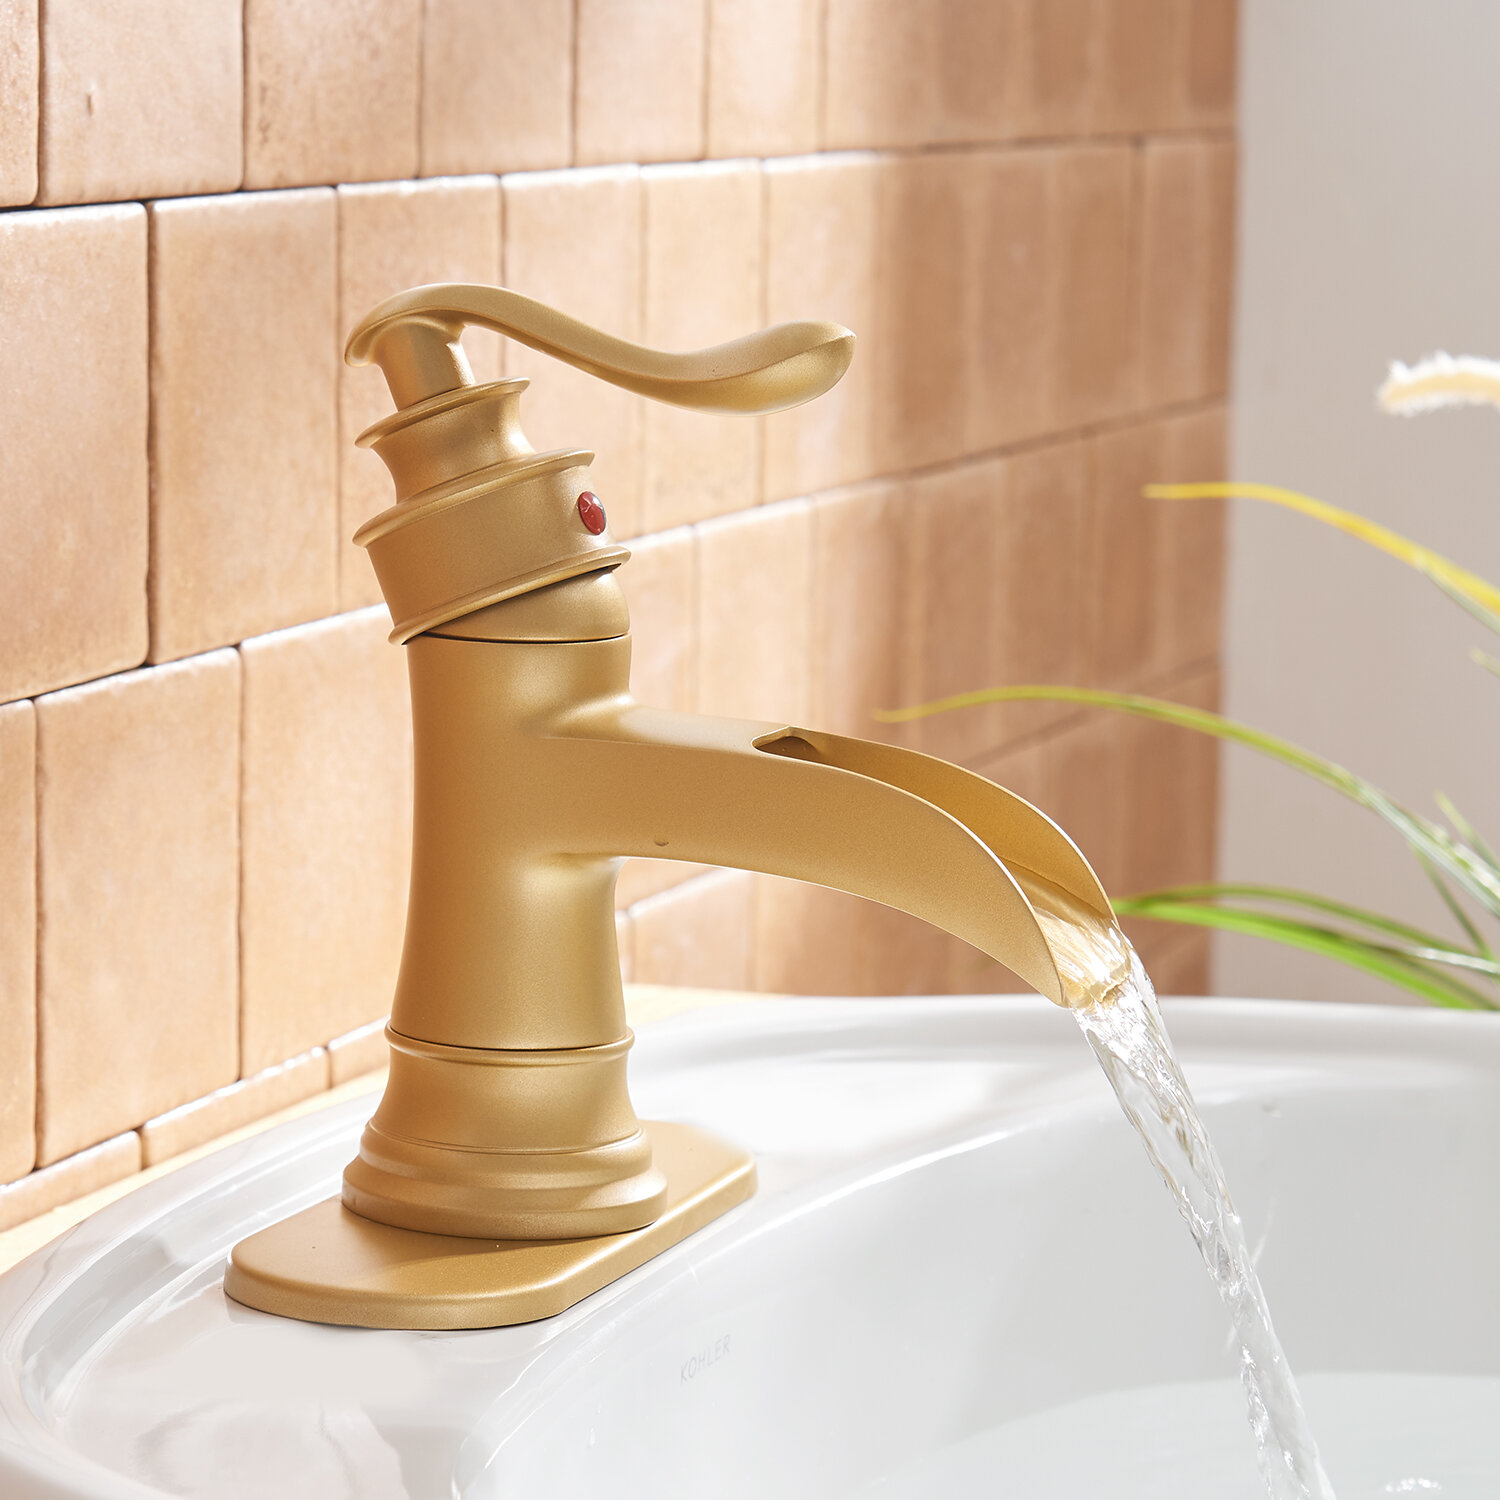 Brushed Gold Single Hole Bathroom Faucet with Drain Assembly